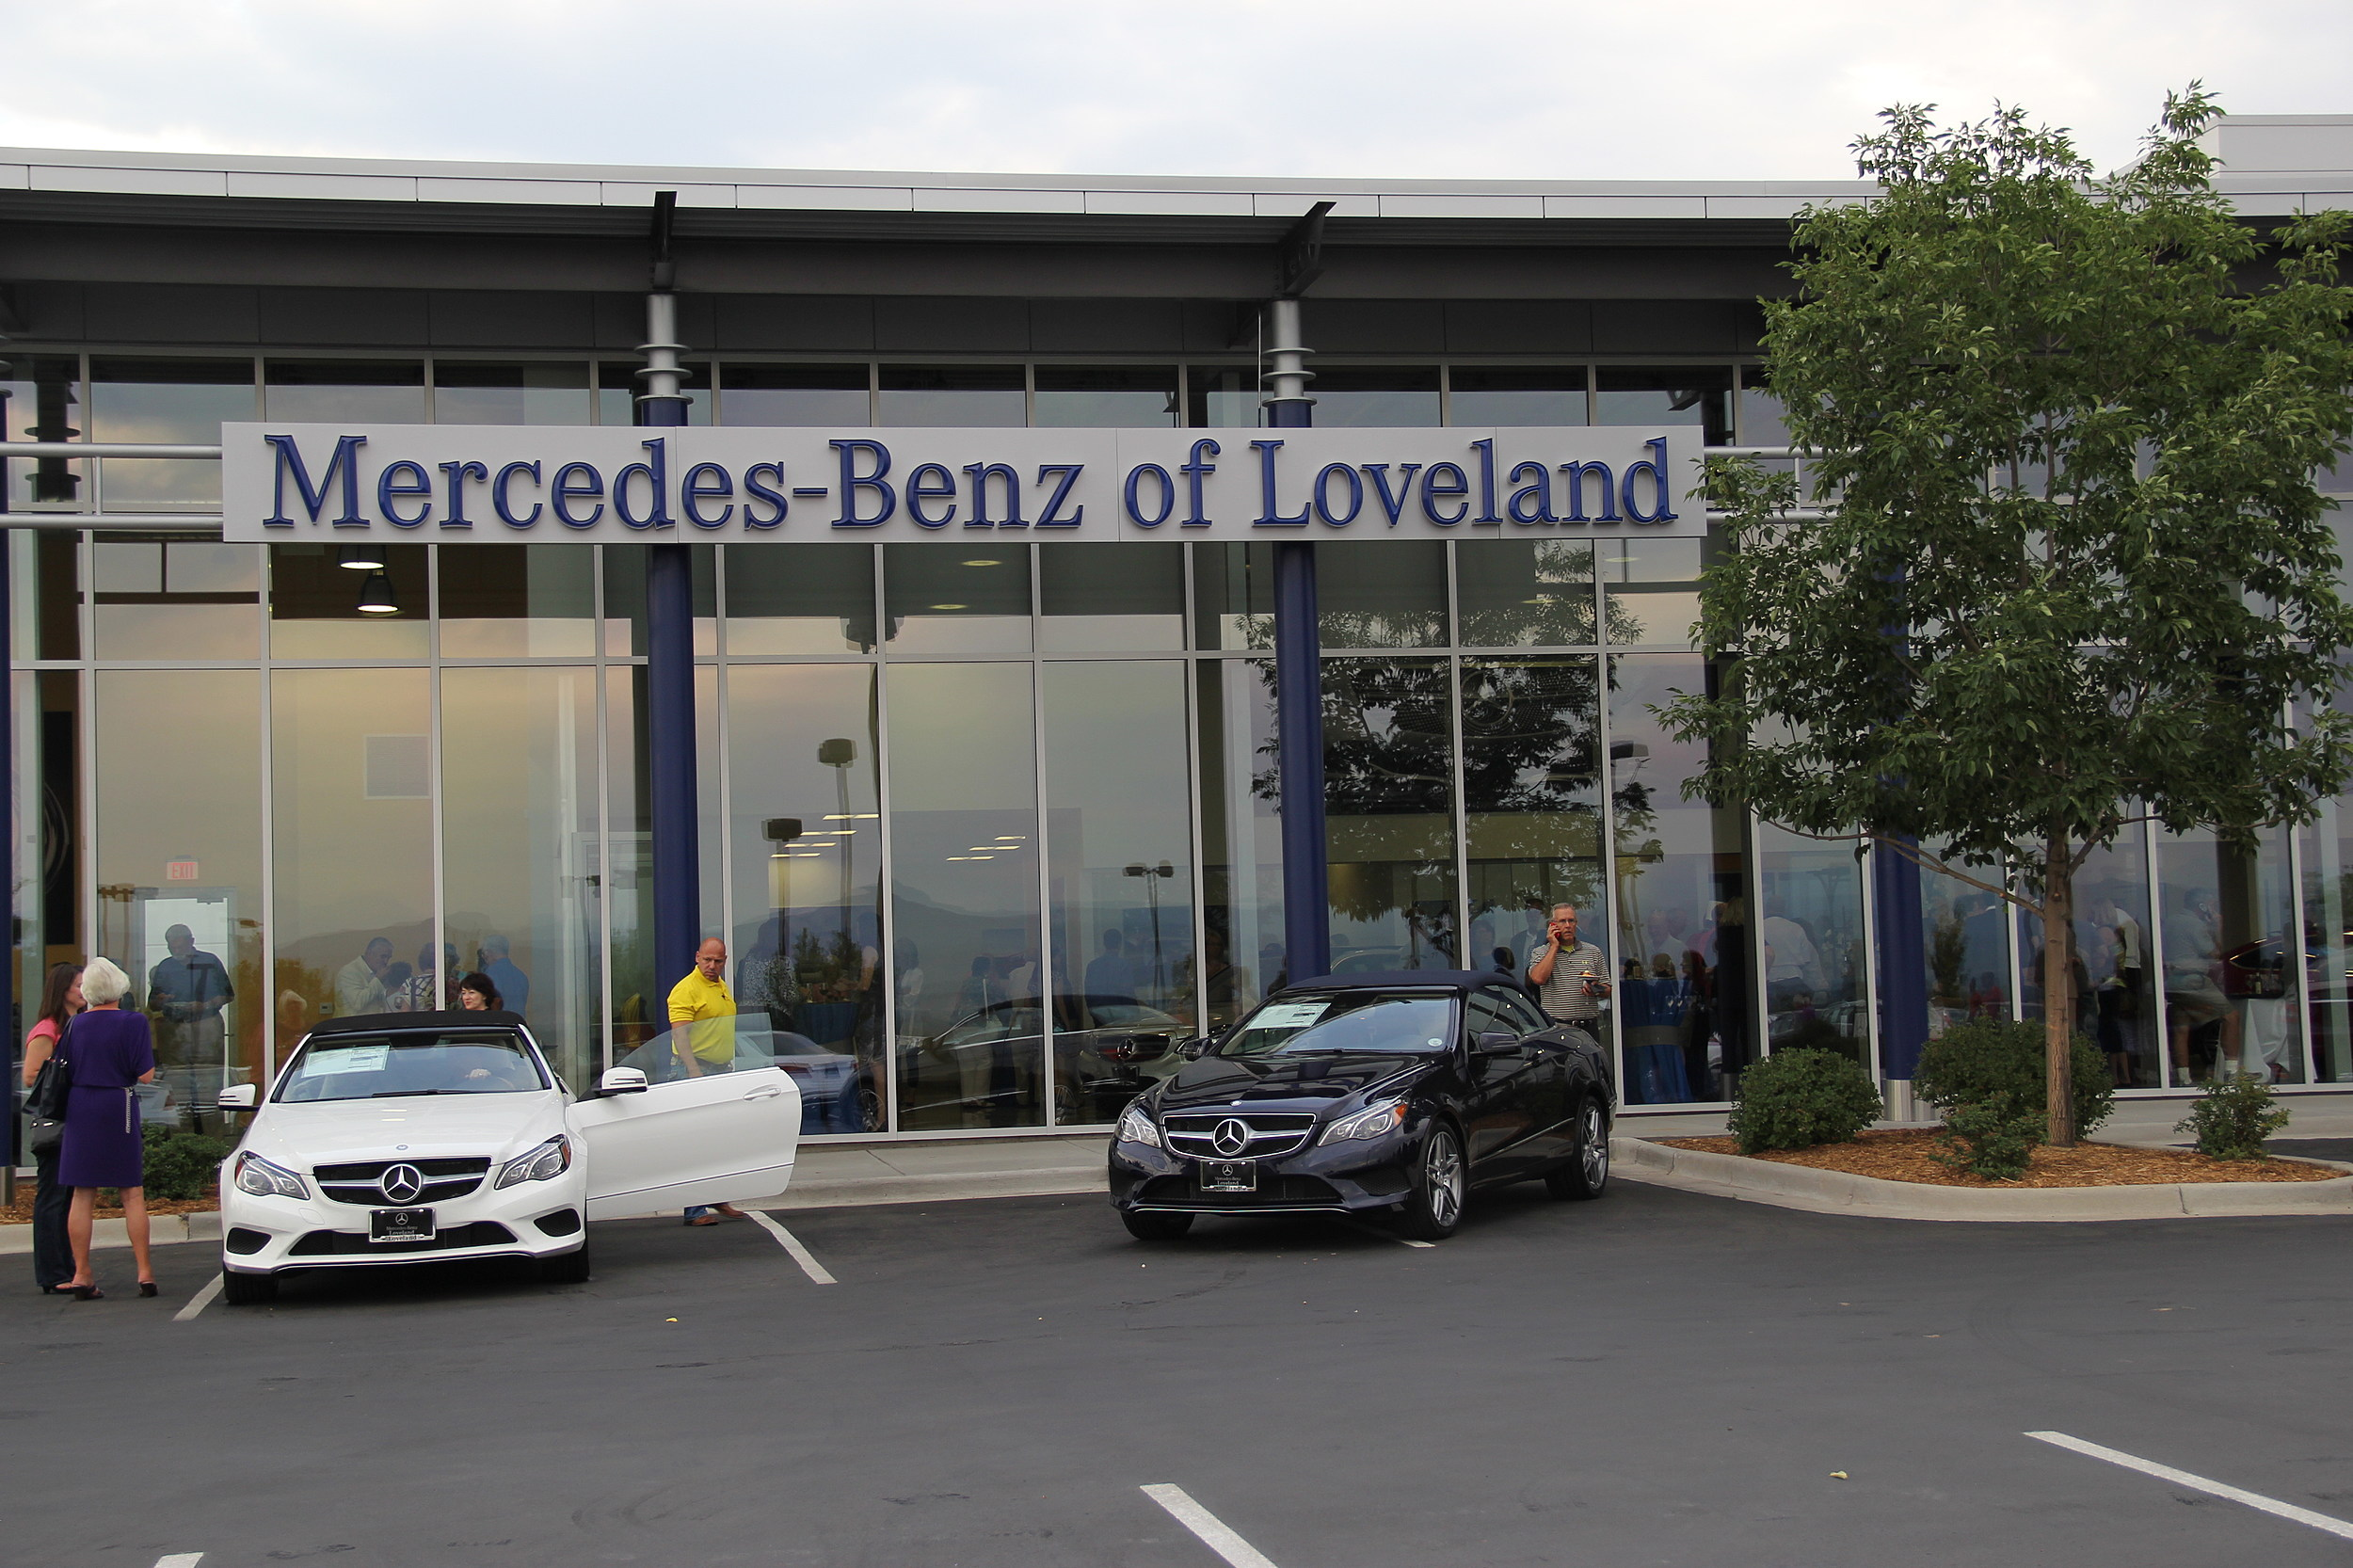 Loveland Mercedes Benz Dealership Celebrates Grand Opening